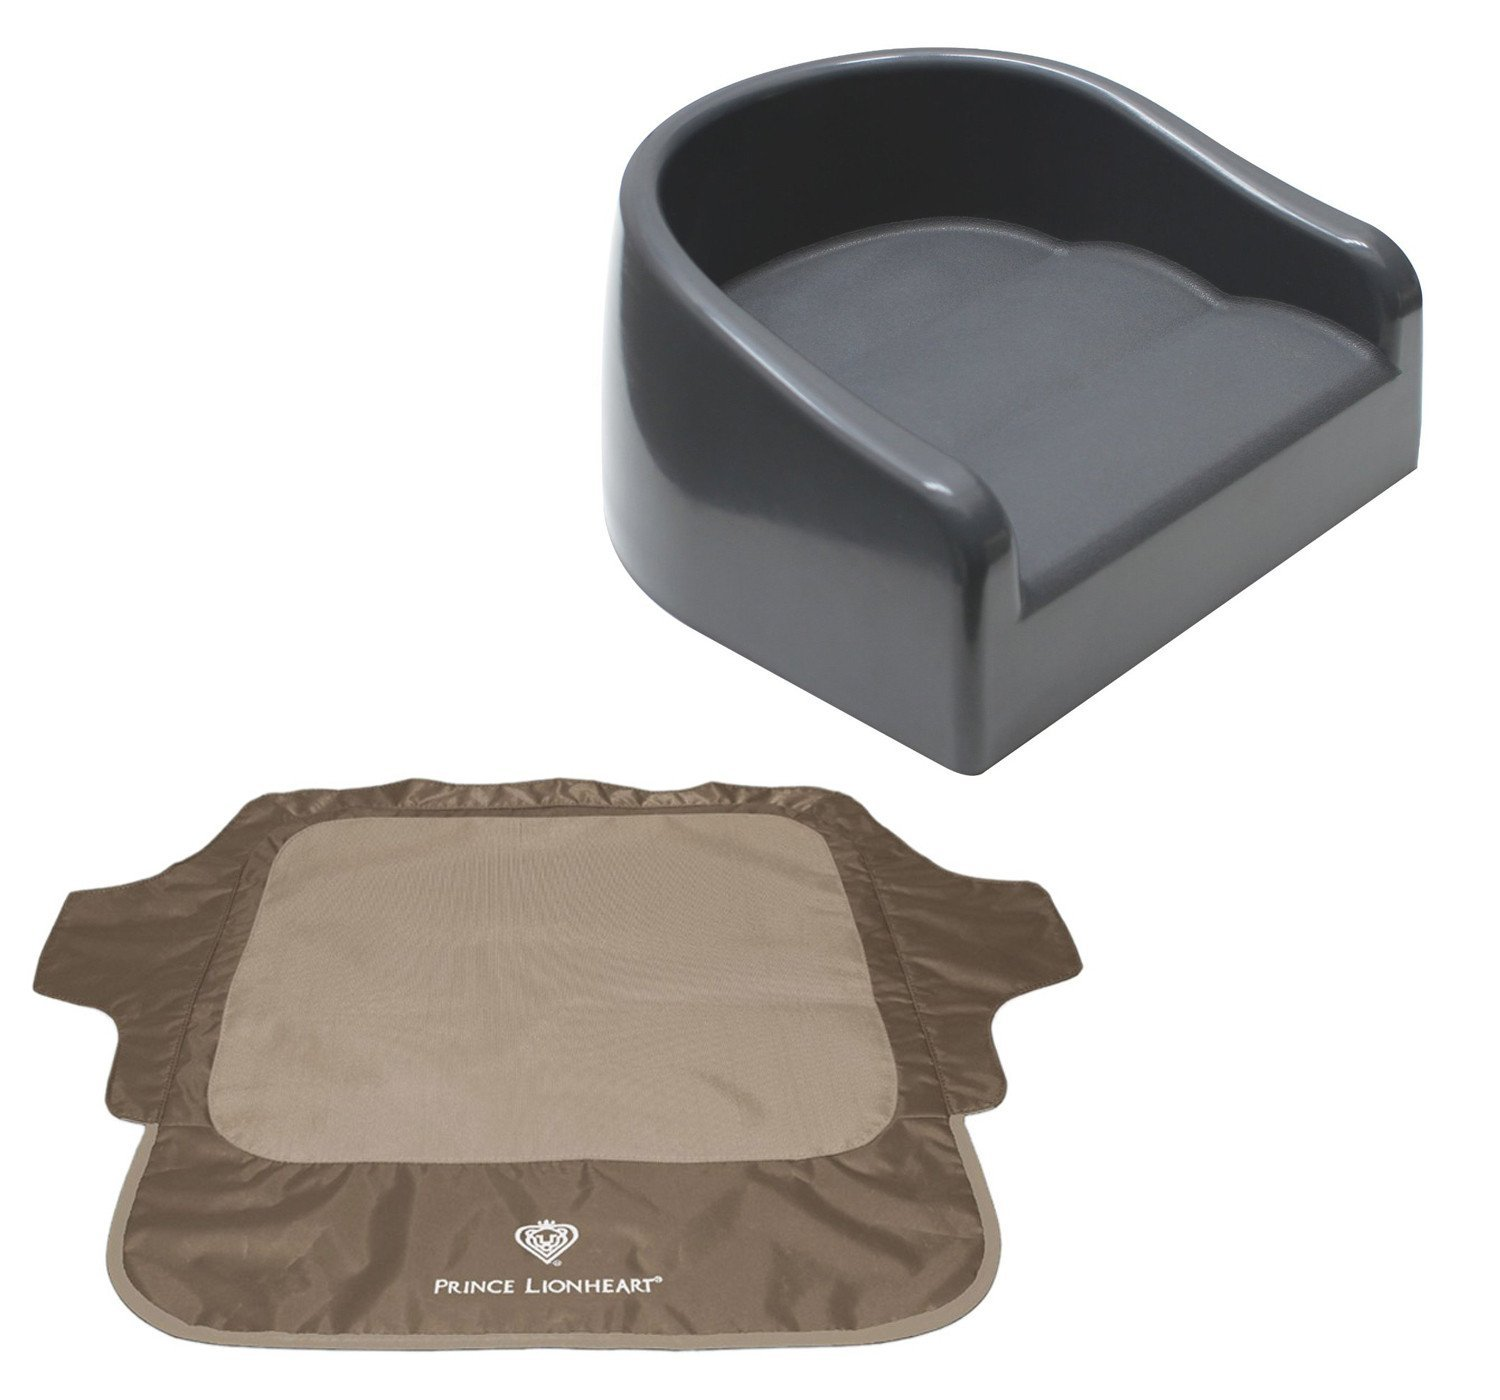 Prince Lionheart Soft Booster Seat with Seat Neat Chair C...